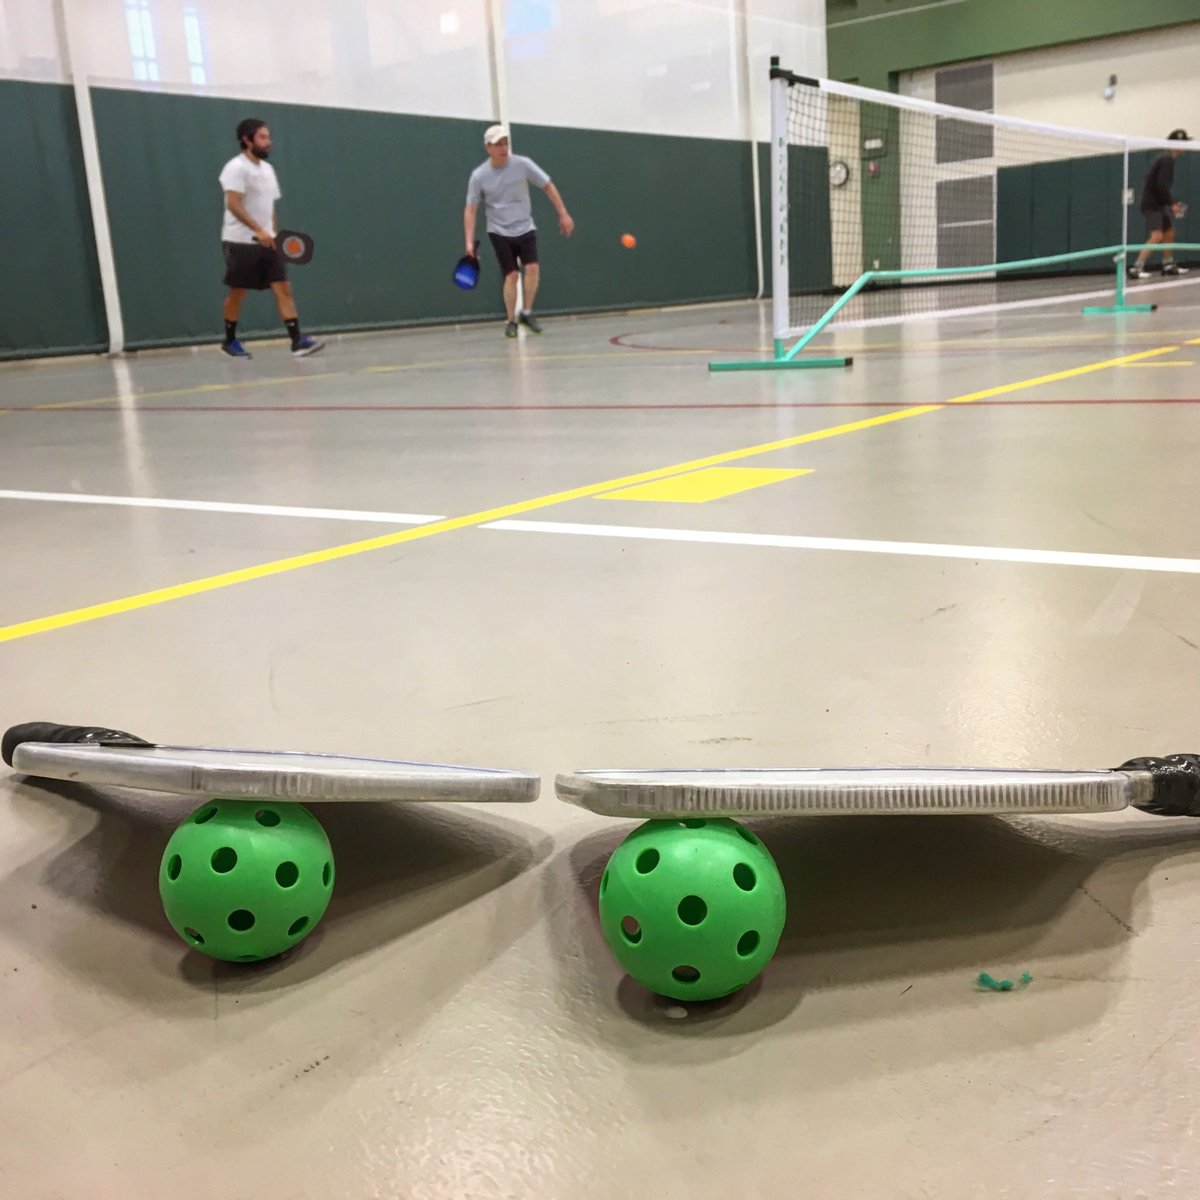 Reserve your time blocks to play pickleball starting on Monday, November 2. Visit our website https://t.co/EueVu6xmuQ for schedule, guidelines and more. See you on the courts. #tdrpd #truckee #pickleball #tahoe #mountainforward #activemountainliving https://t.co/QR7I9CLj9s